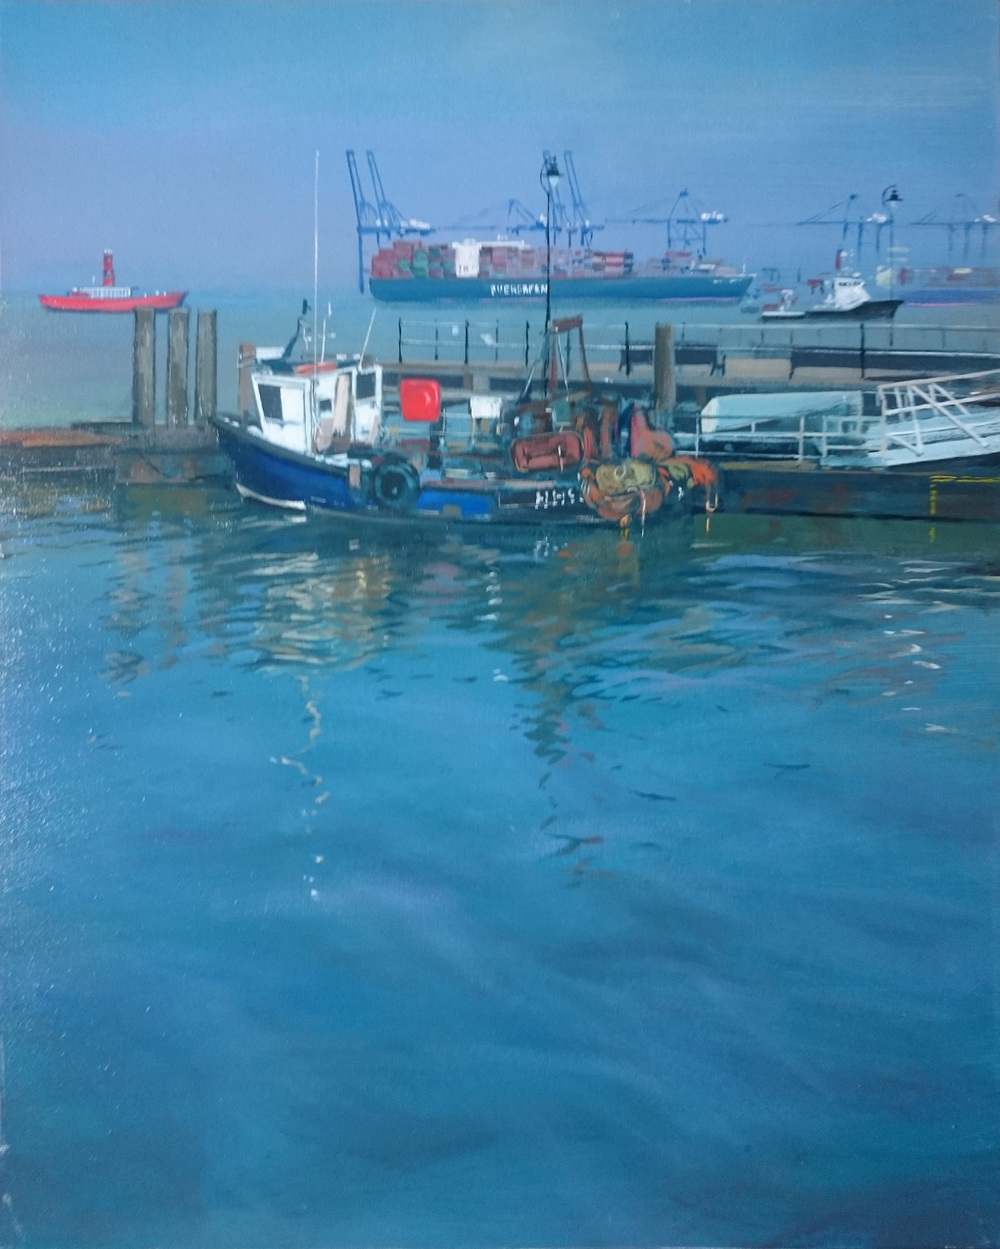 Harwich 10 50 x 40 cm oil on canvas £650